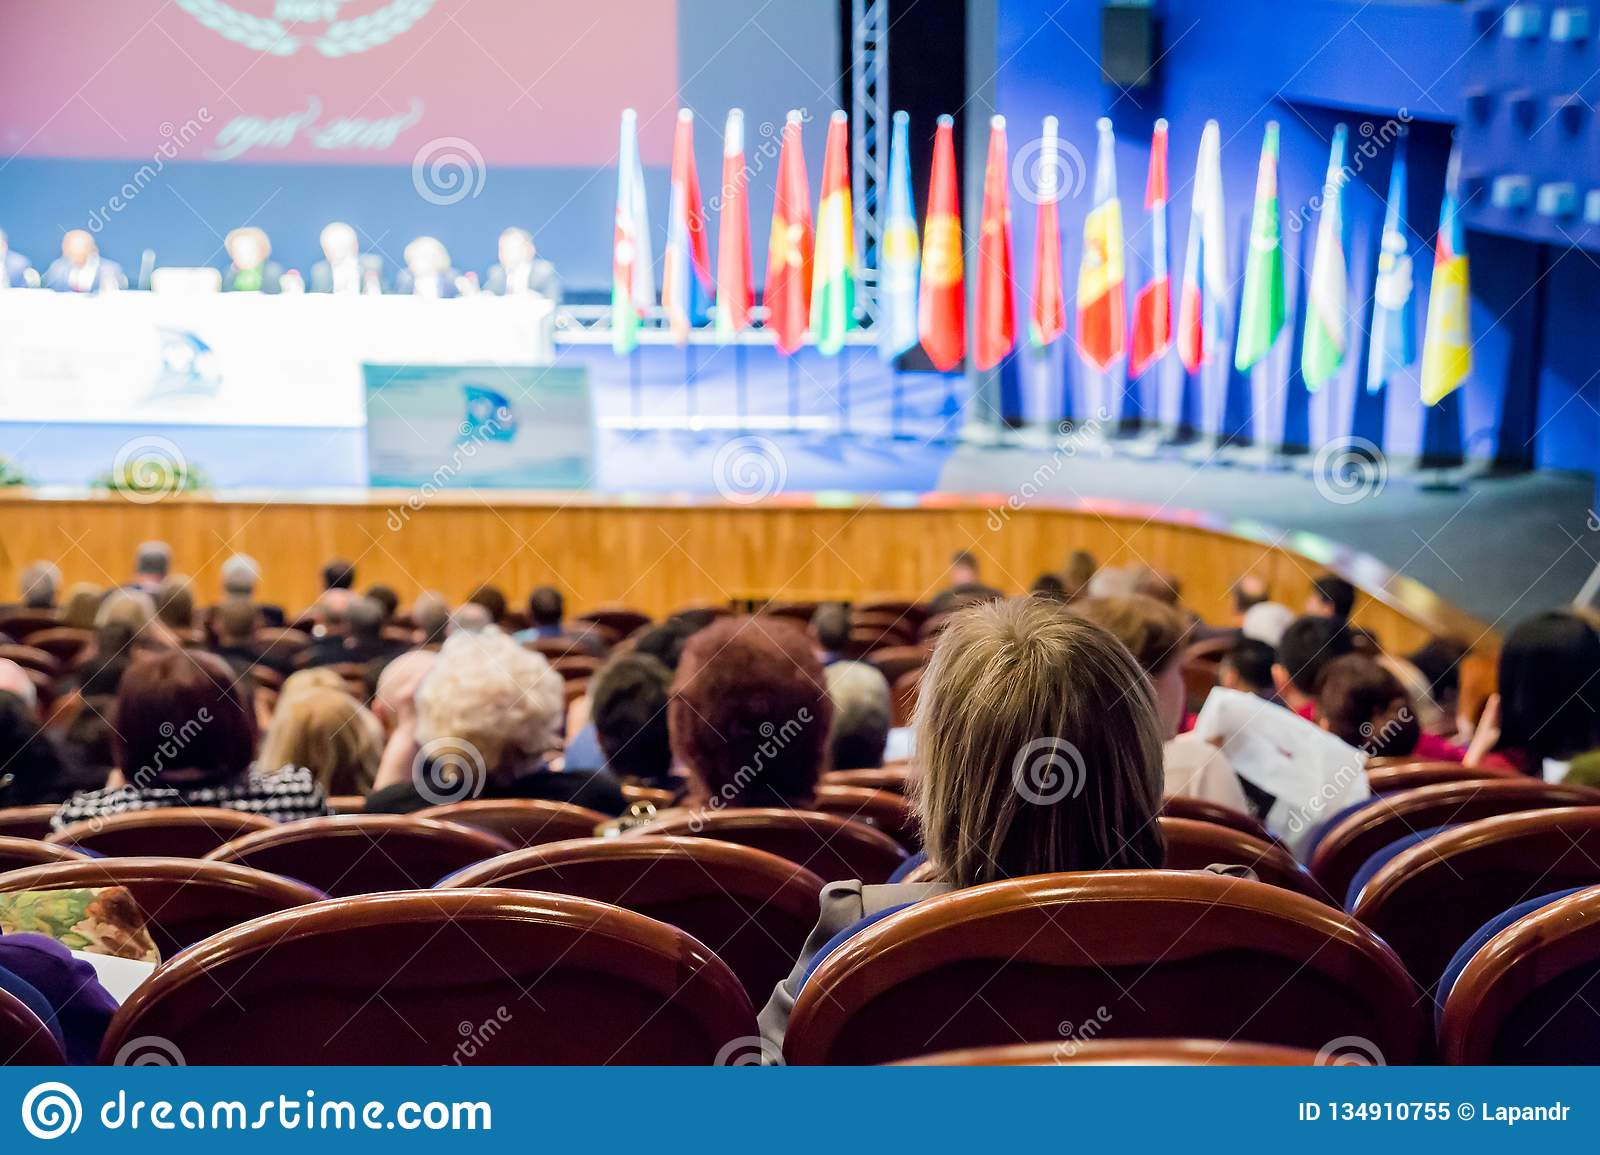 Defocused image. People in the auditorium. International conference. Flags of different countries on stage